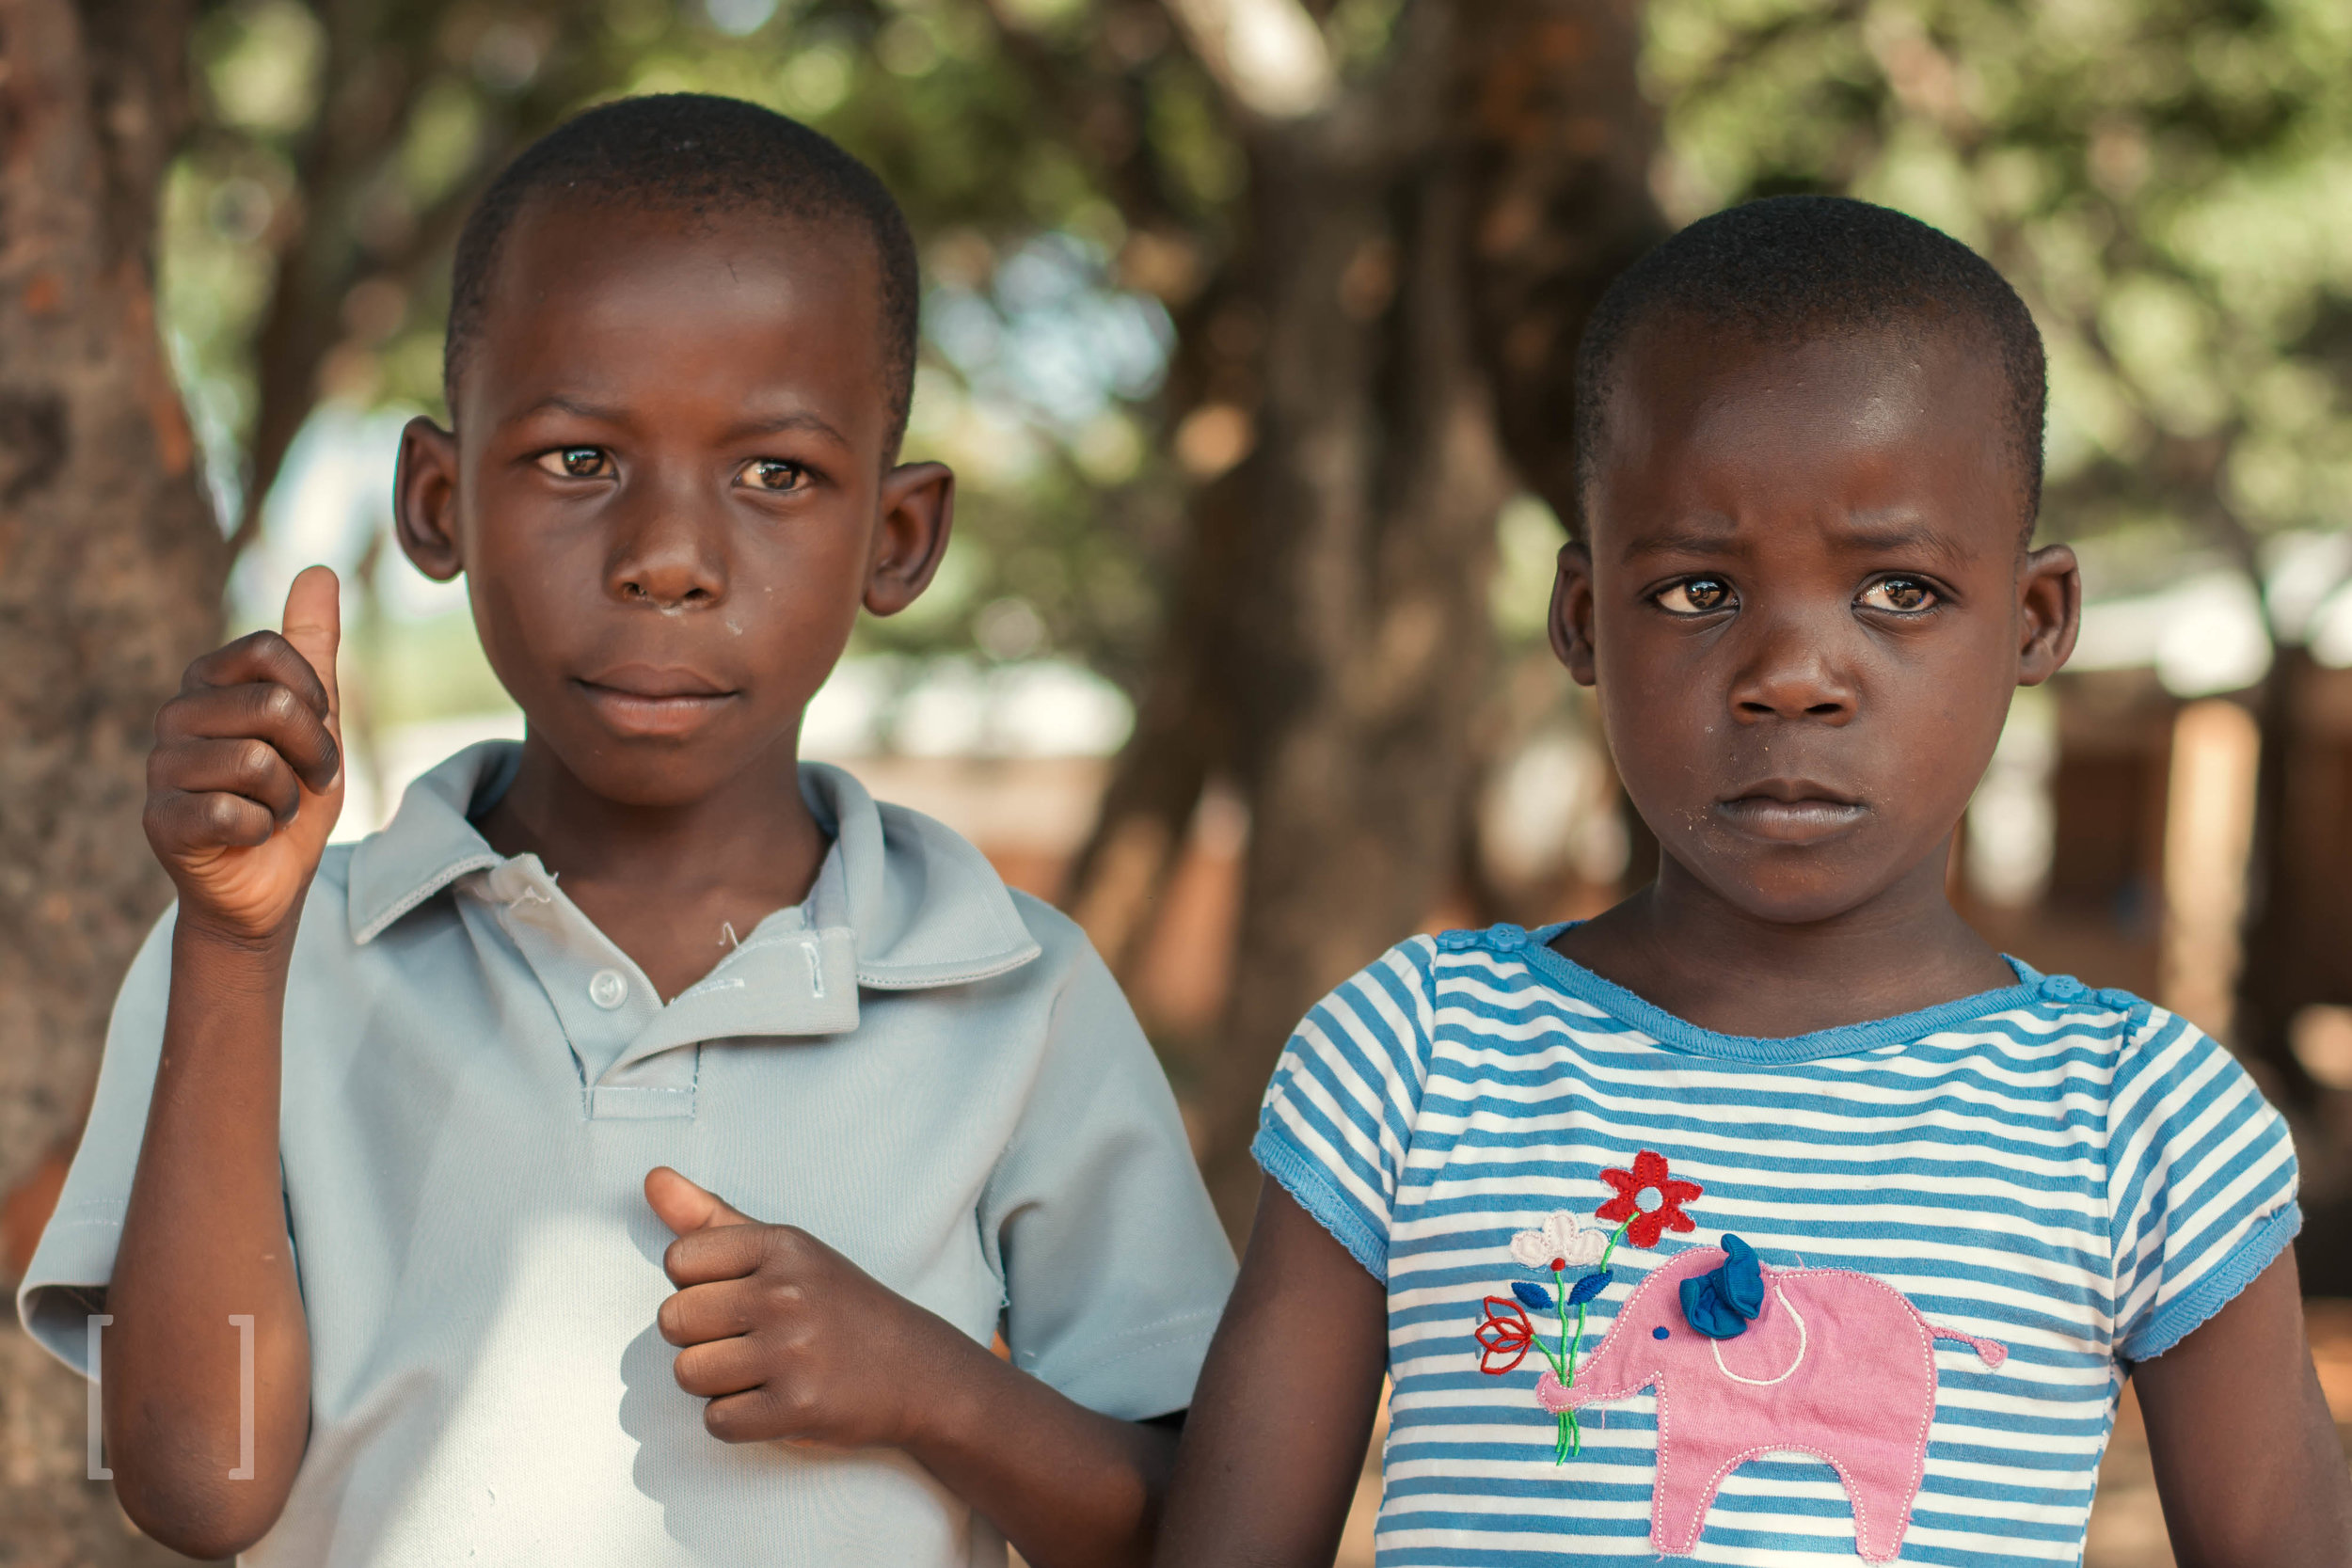 Andrew and Mary - Mary and Andrew are twins and came to Home of Hope after being on the Milk Outreach Program for one year. Their grandmother could not afford to look after them and admitted them for proper care. They are doing great! Reach out to them with a helping hand.